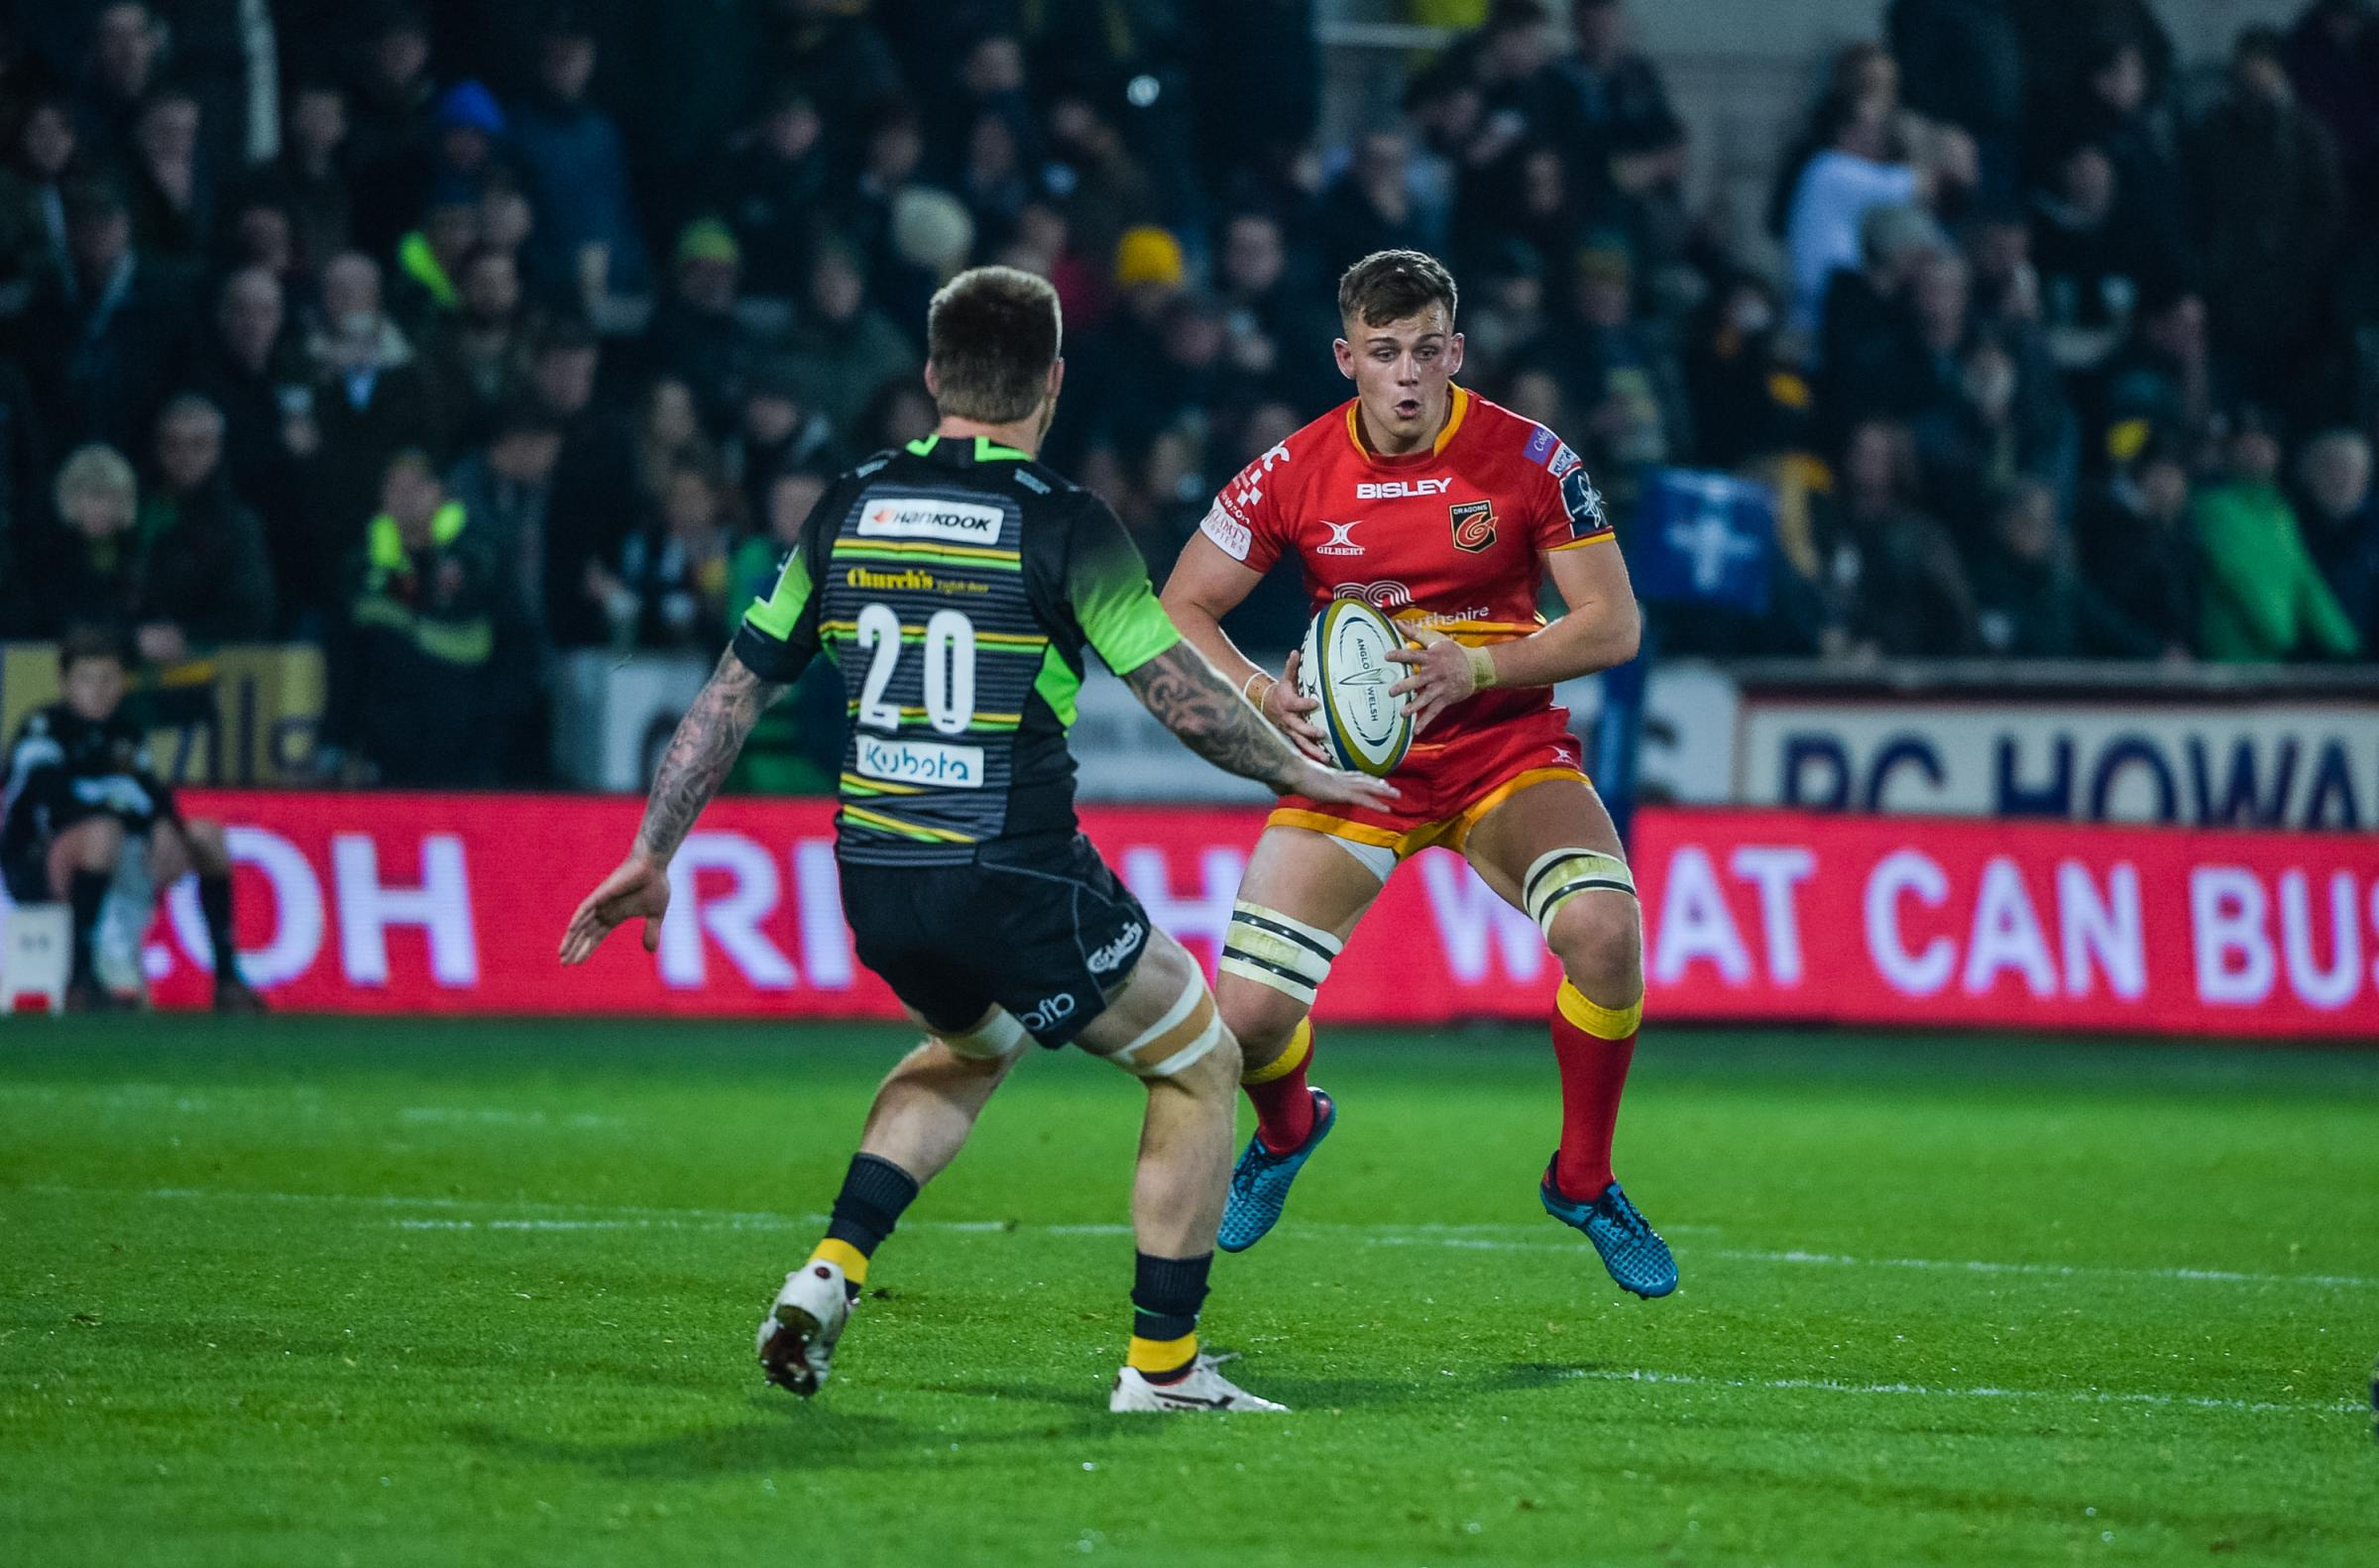 ABSENT: Dragons flanker Lennon Greggains will not feature for Wales U20